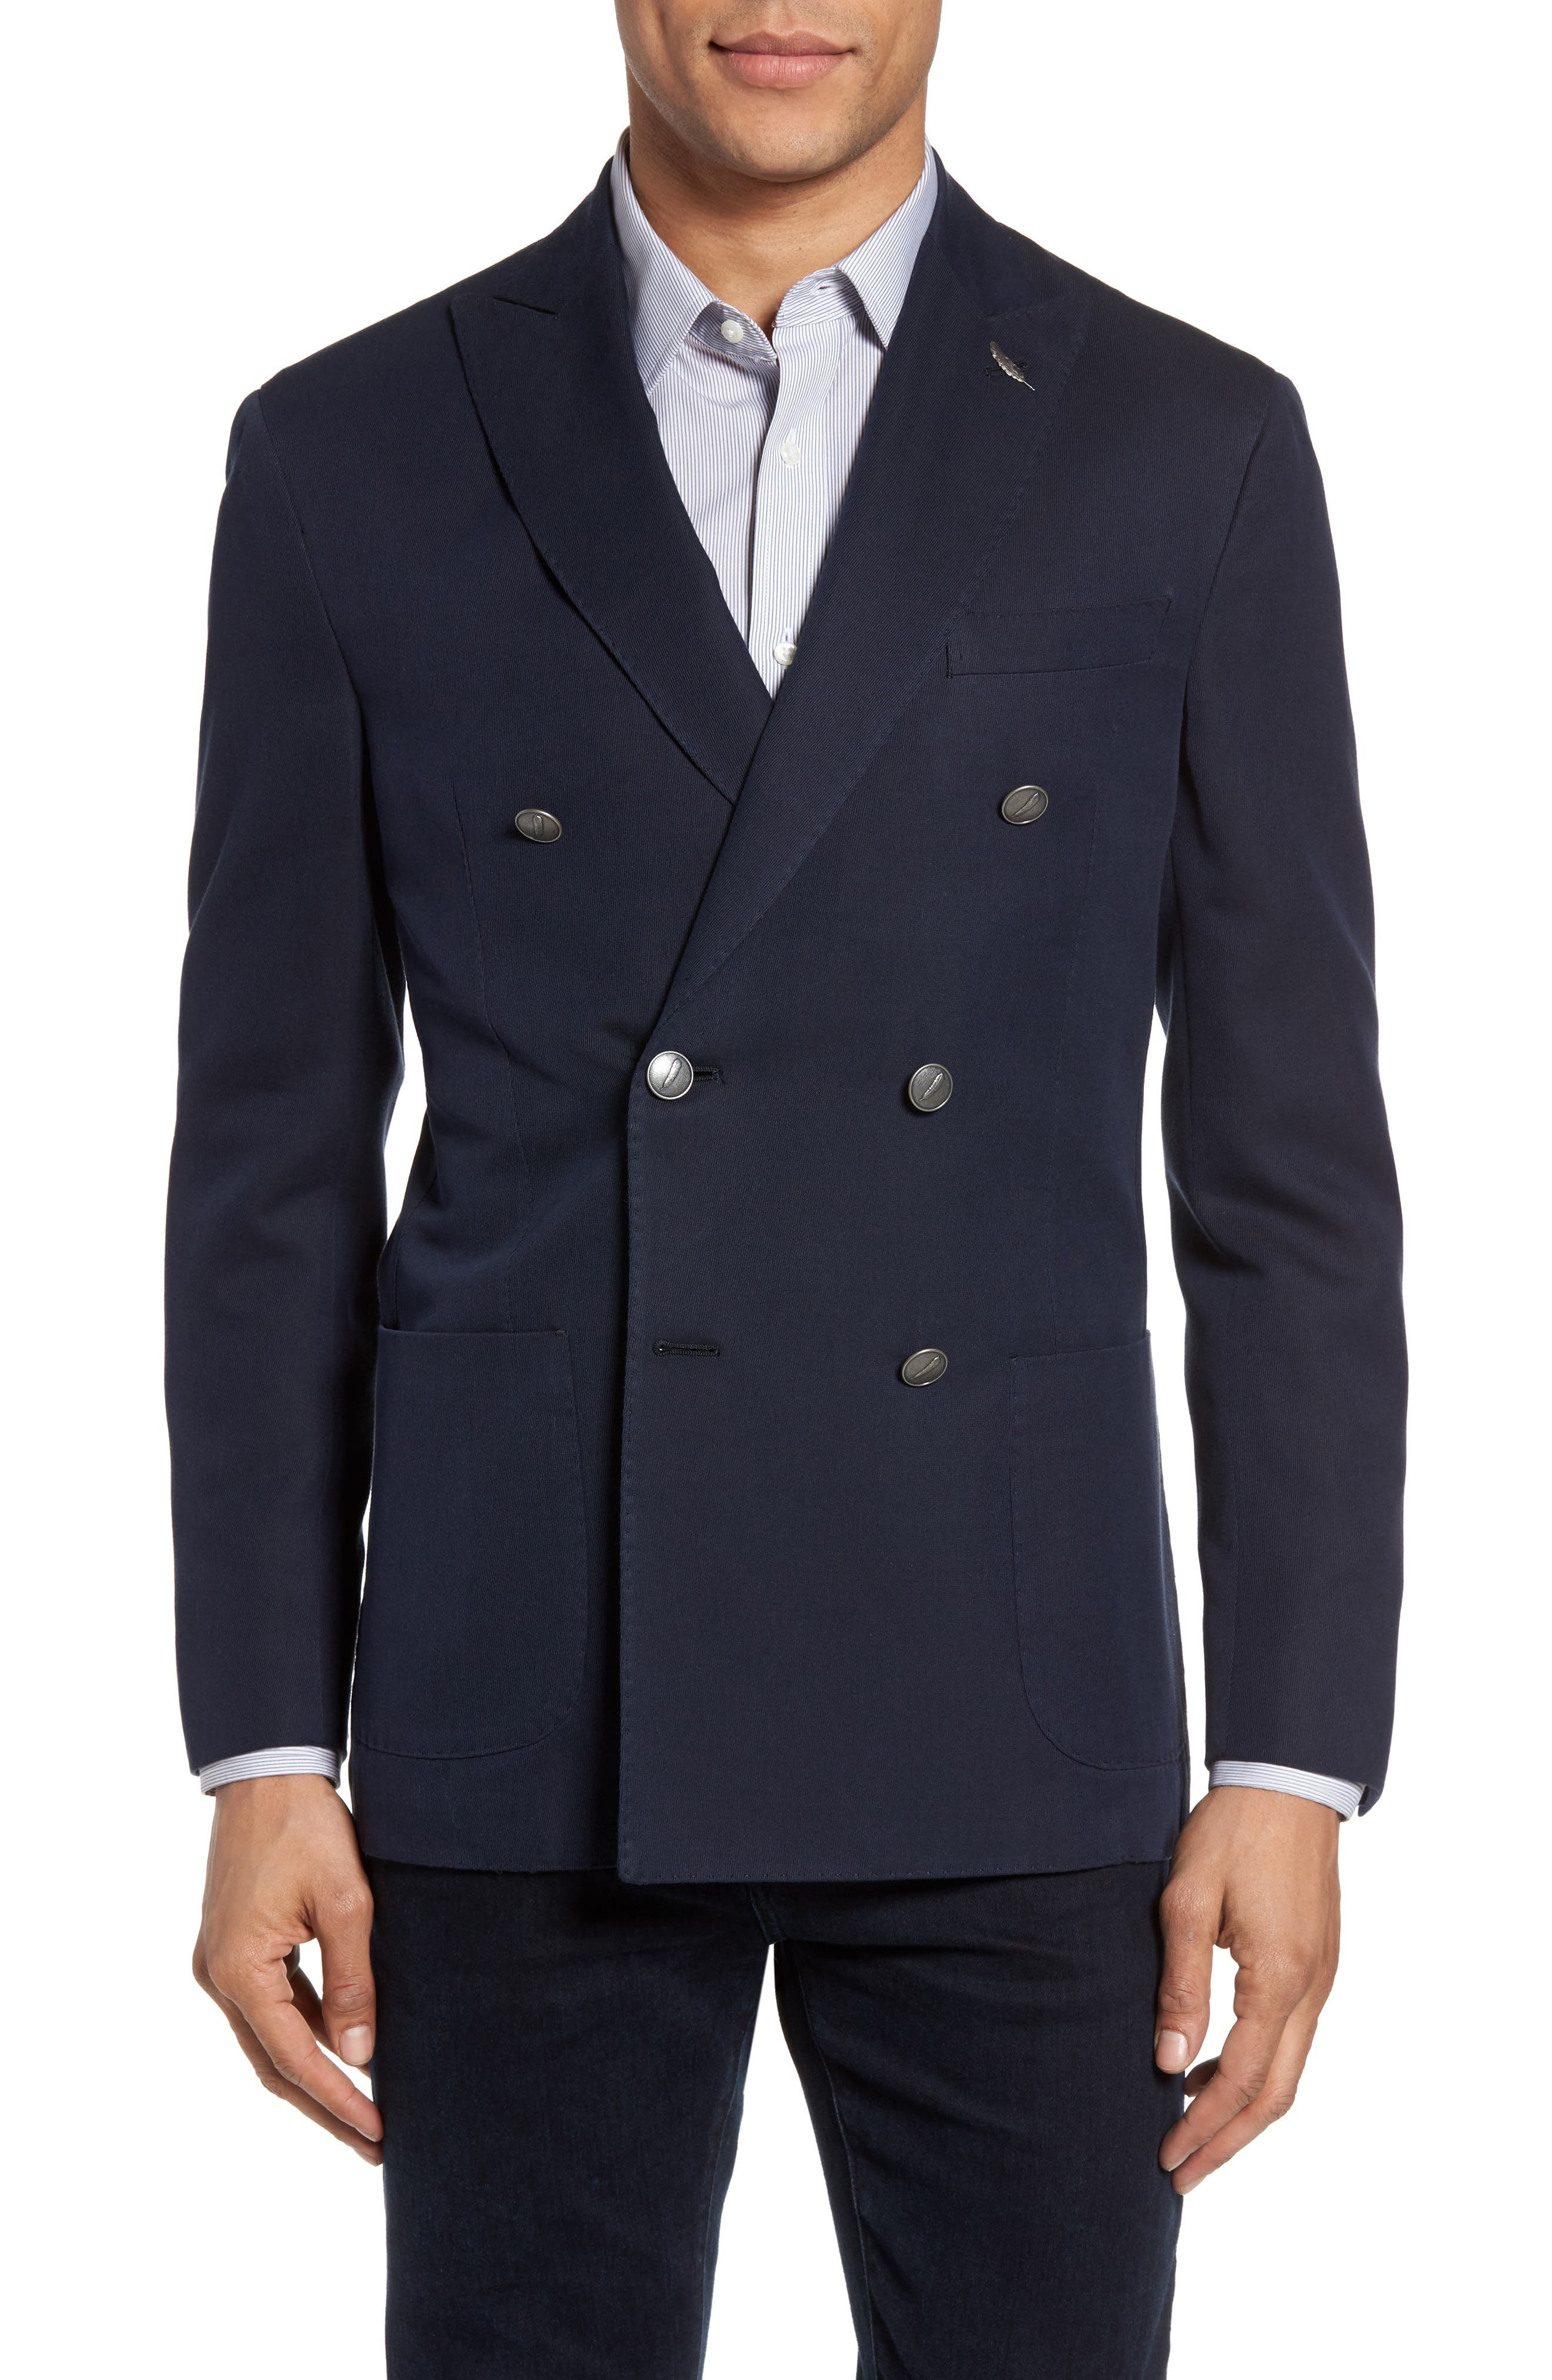 Classic Fit Double Breasted Blazer,                         Main,                         color,